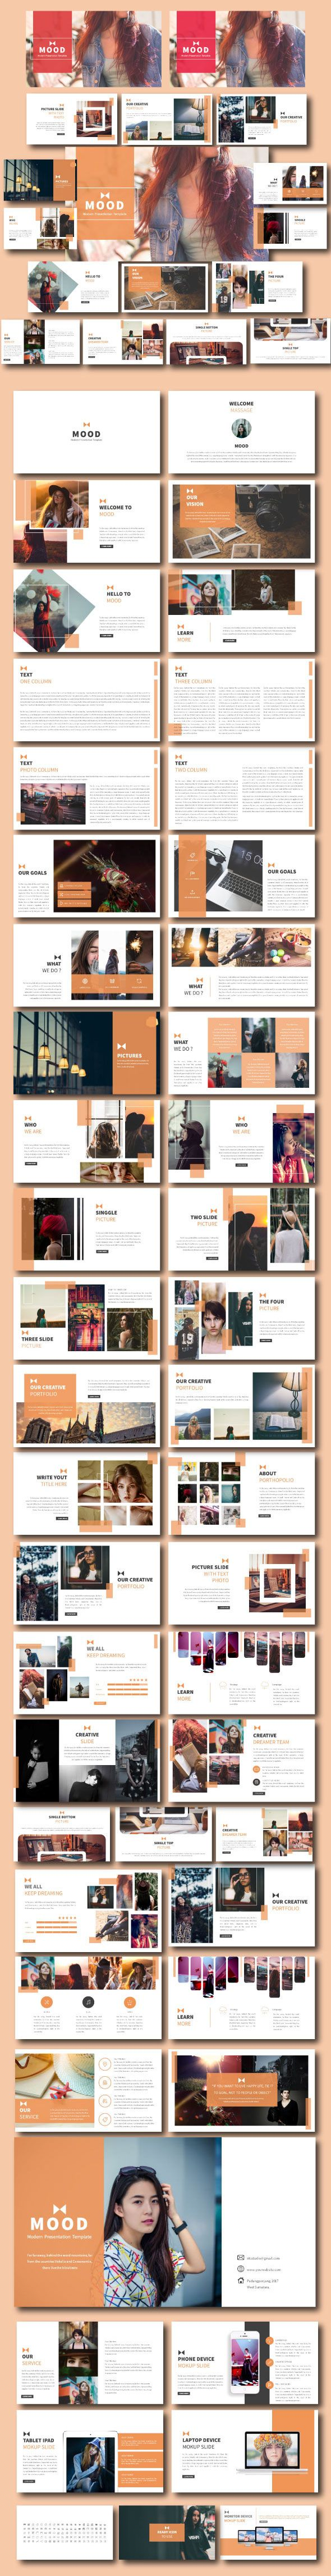 Mood Creative Google Slide Template - #Google #Slides #Presentation Templates